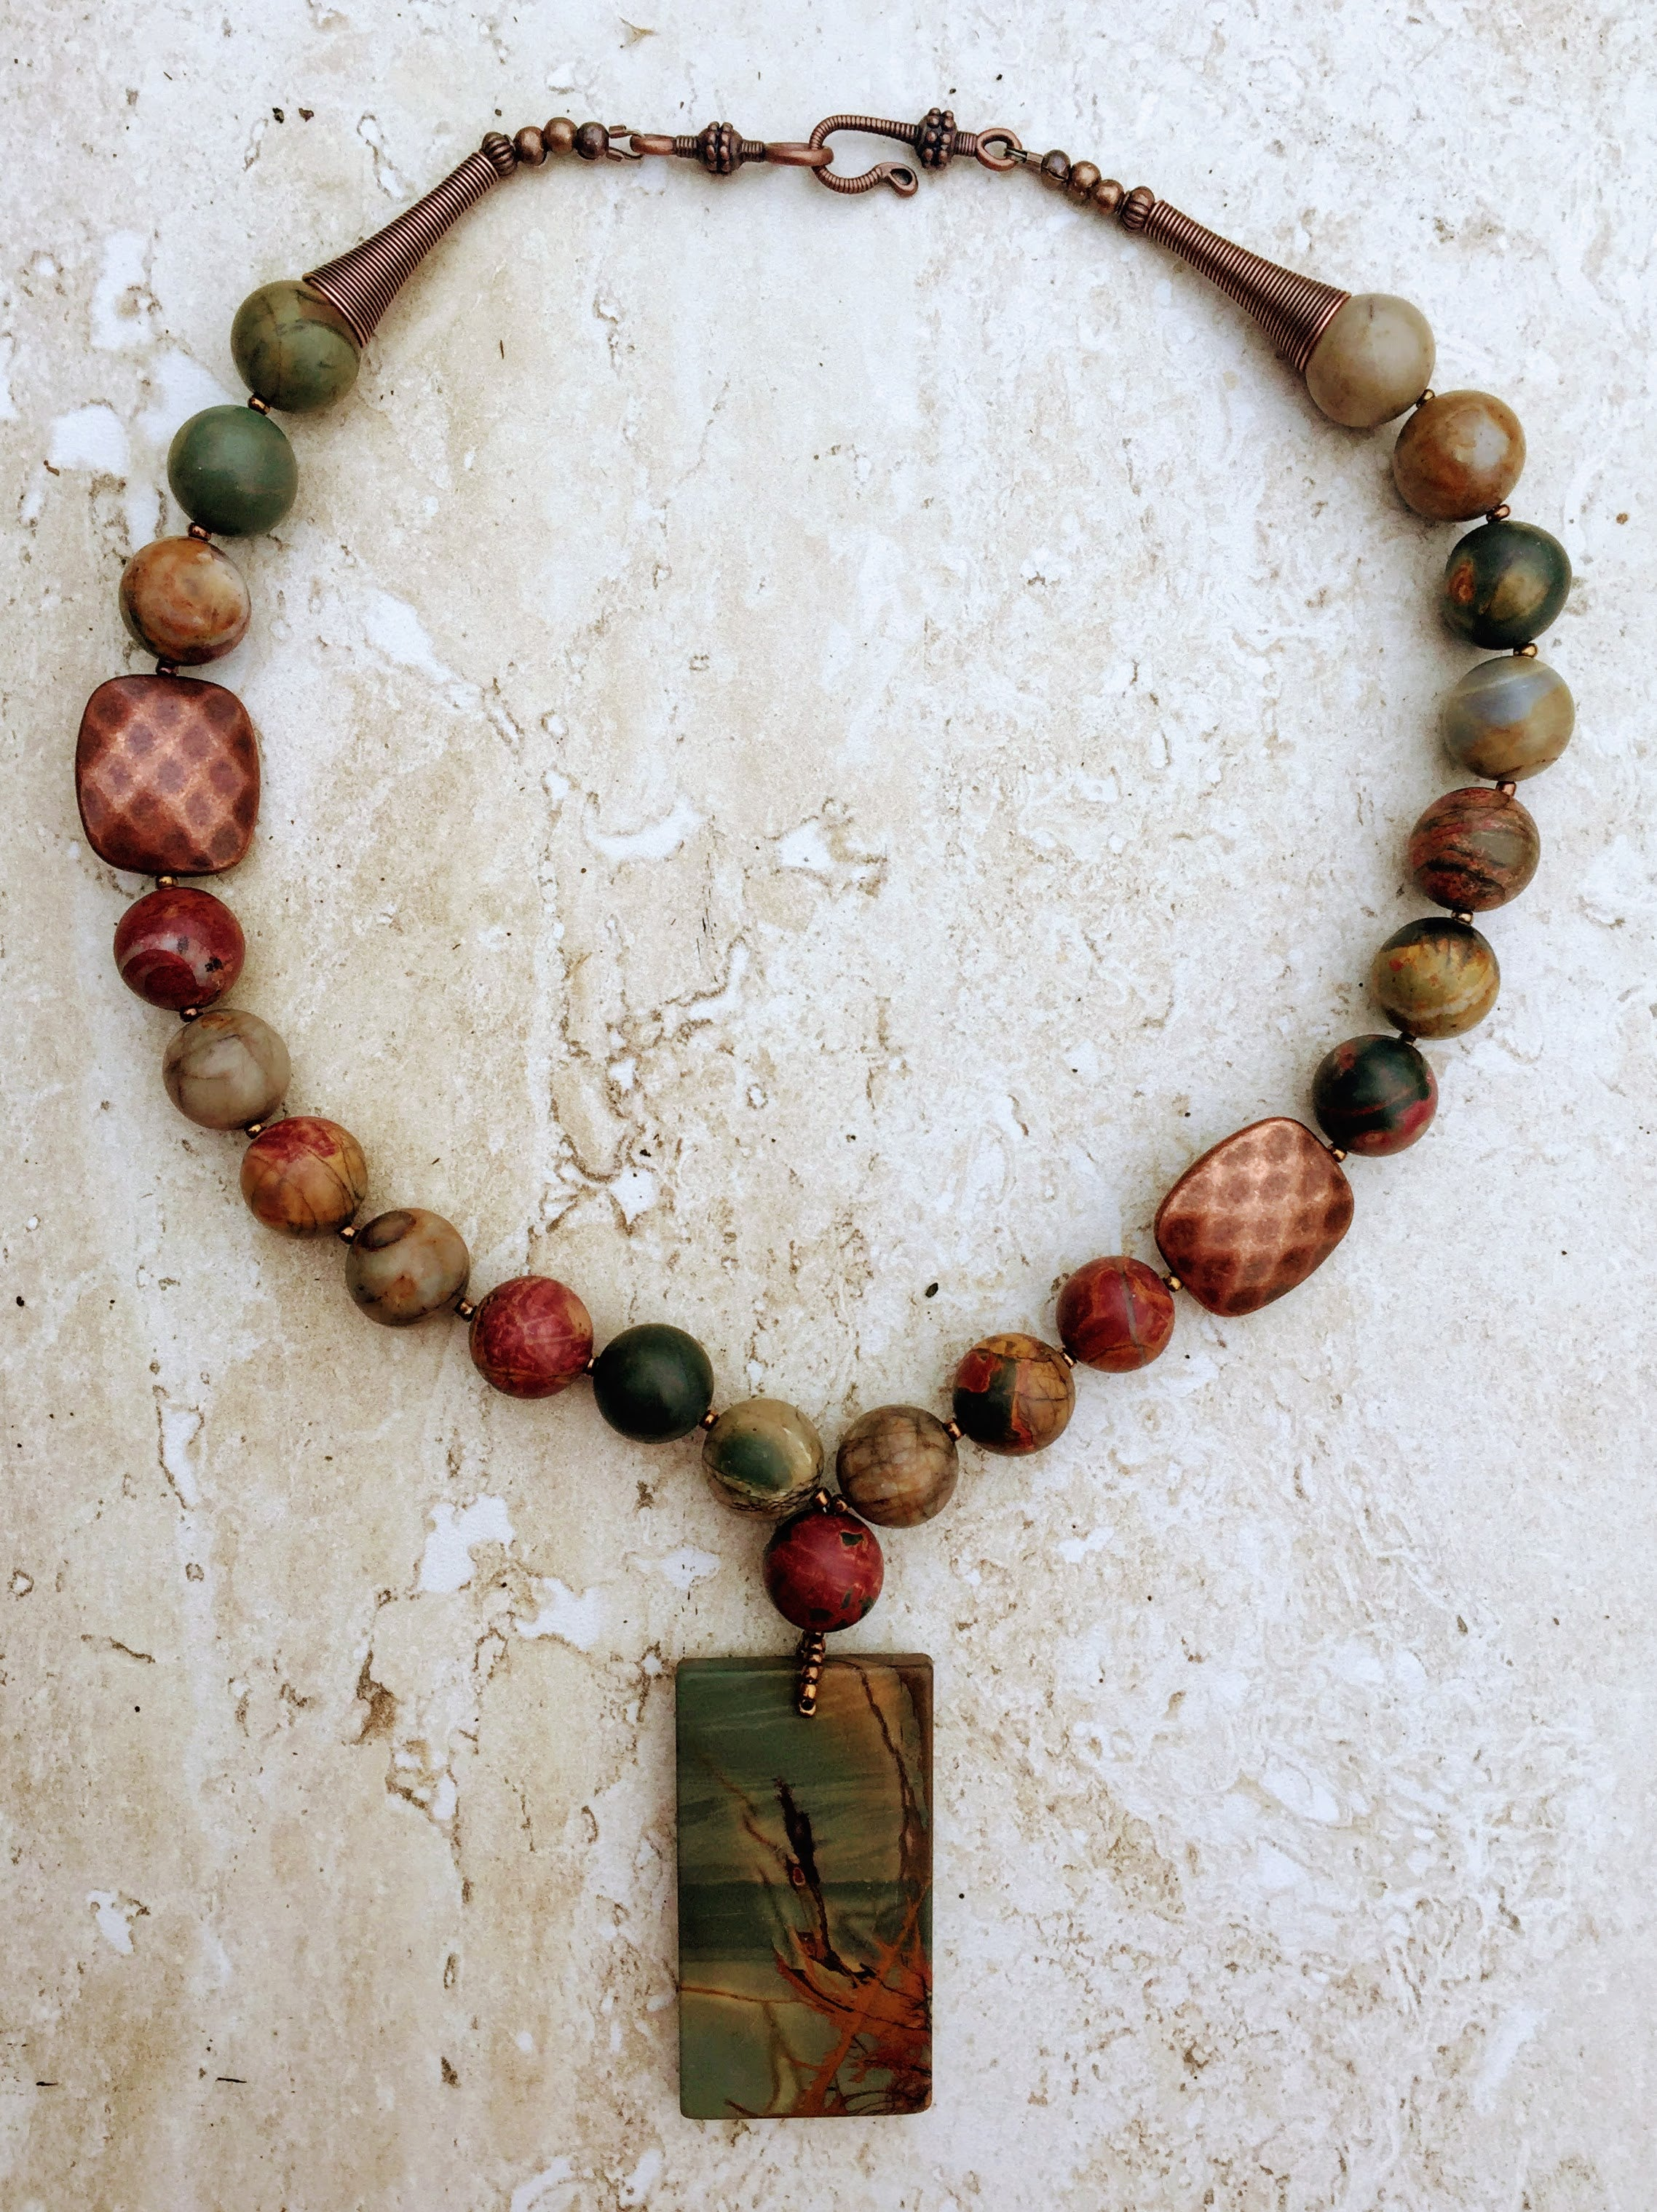 bohemian versatile necklaces boho wear sophisticated office jasper mala long jewelry fall knotted squares accessory products fashion picasso necklace knot artistic collections